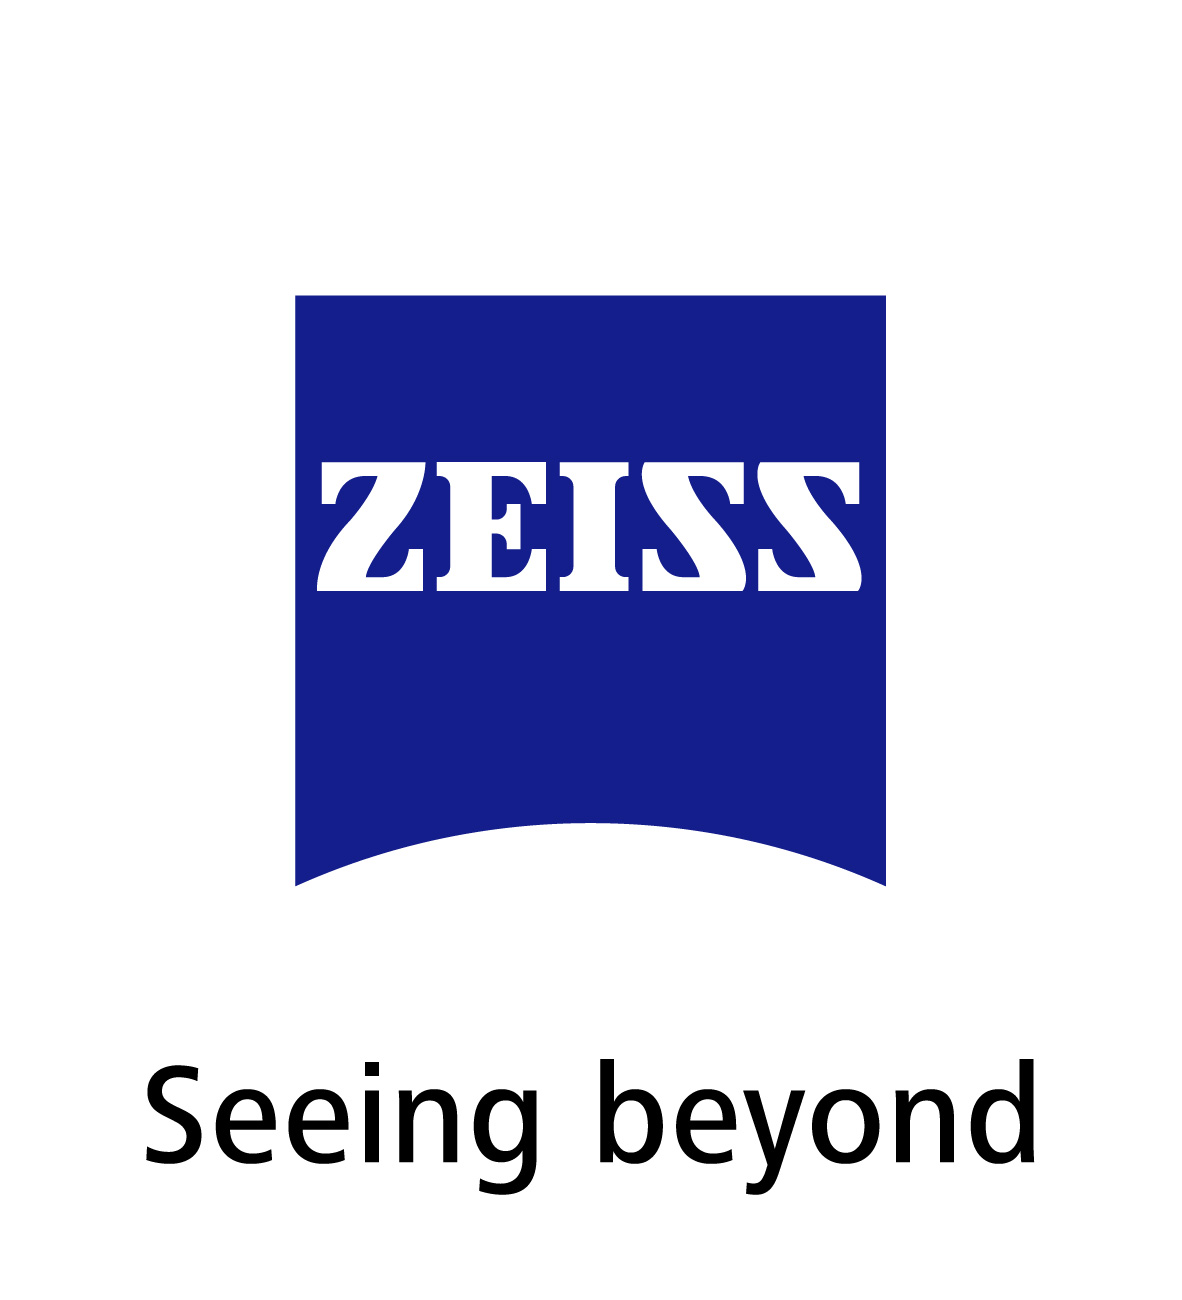 ZEISS: Seeing beyond logo